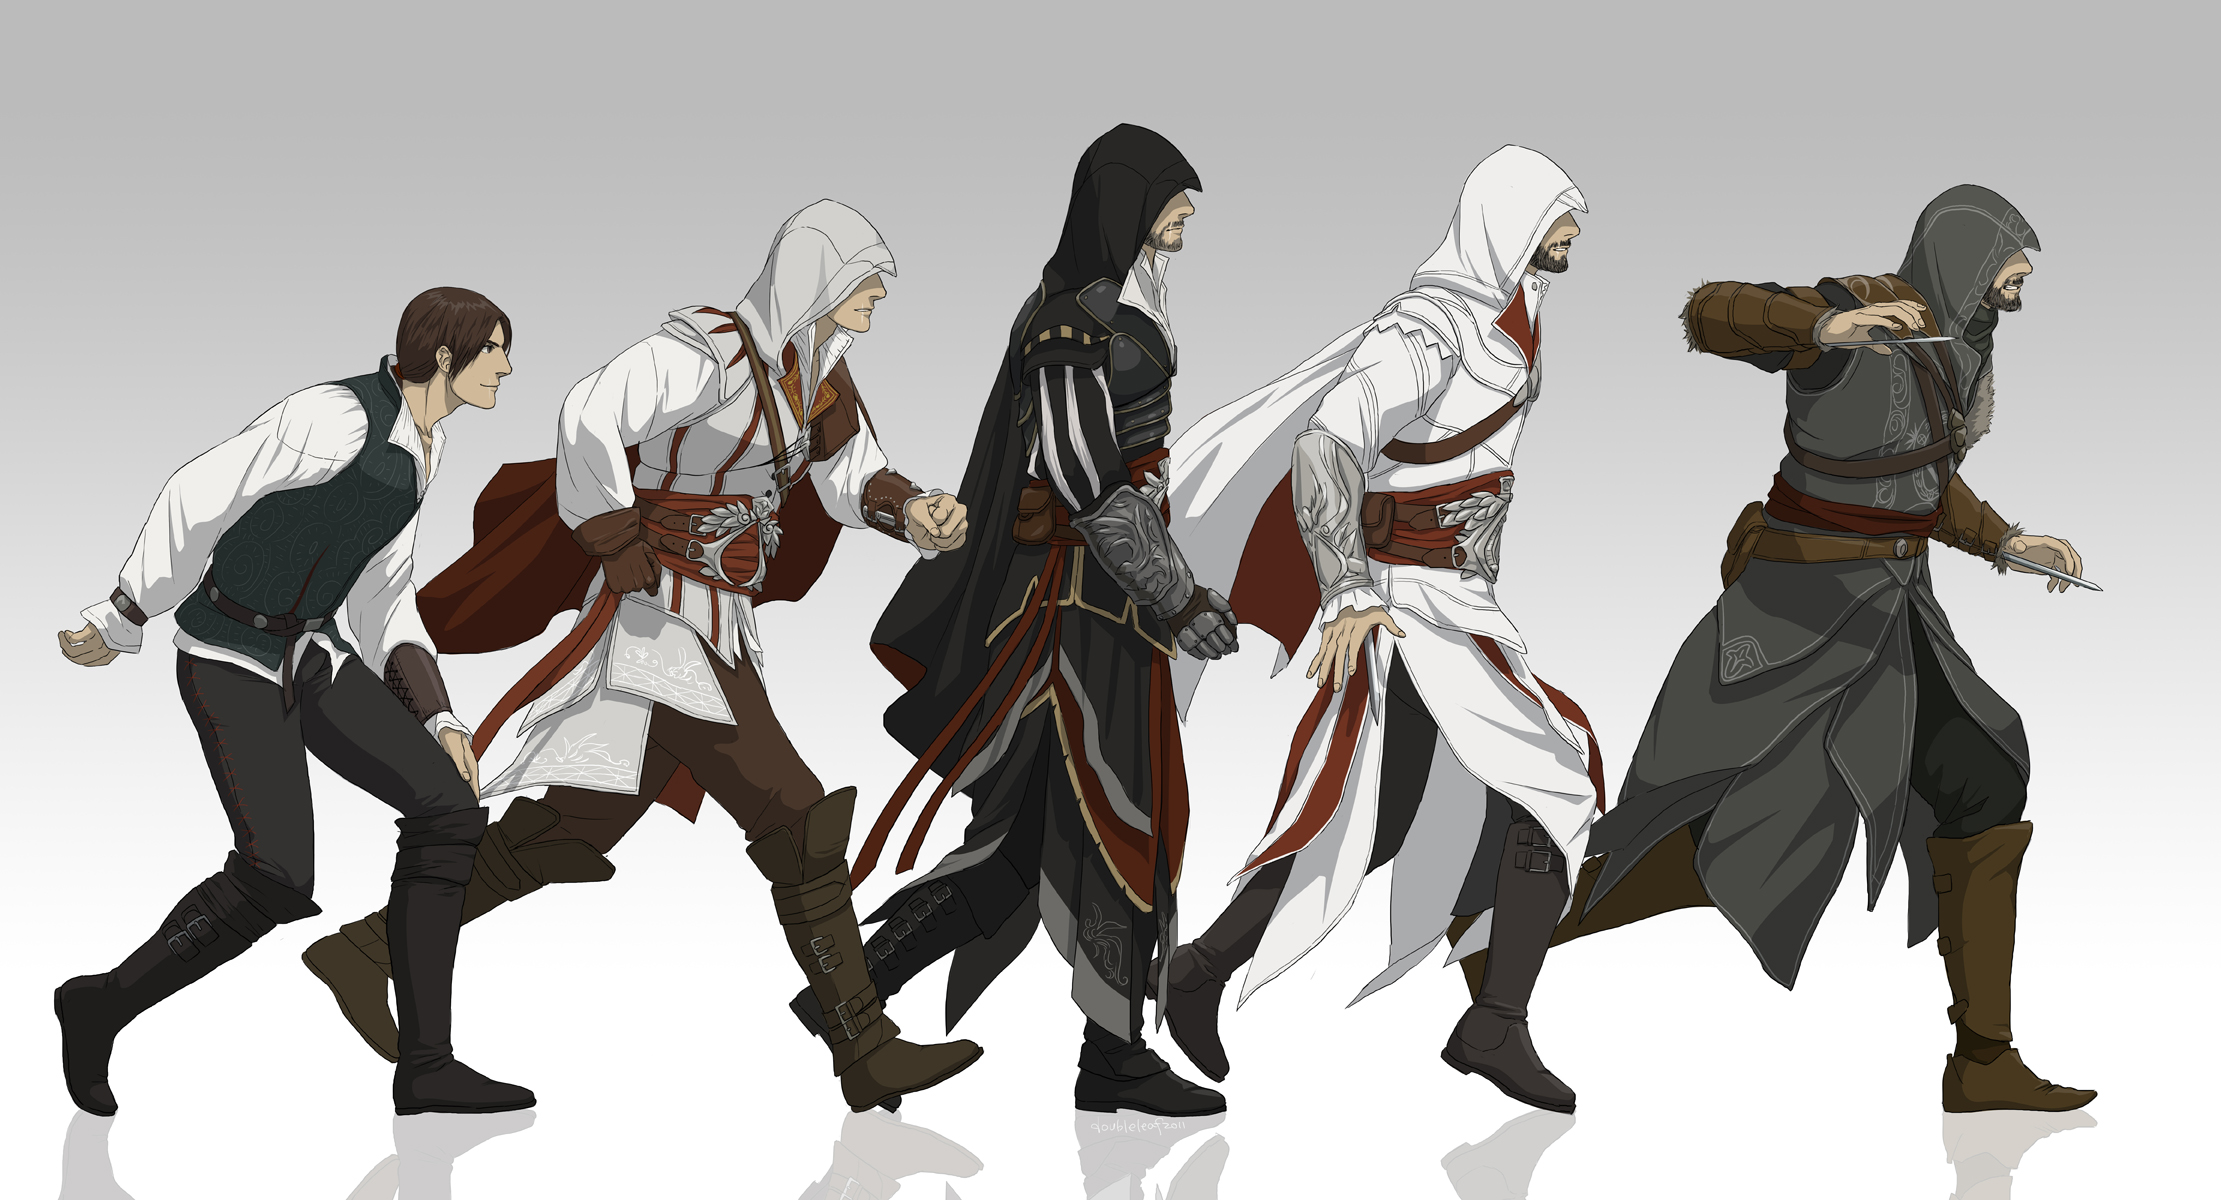 assassin's creed, wallpaper - zerochan anime image board